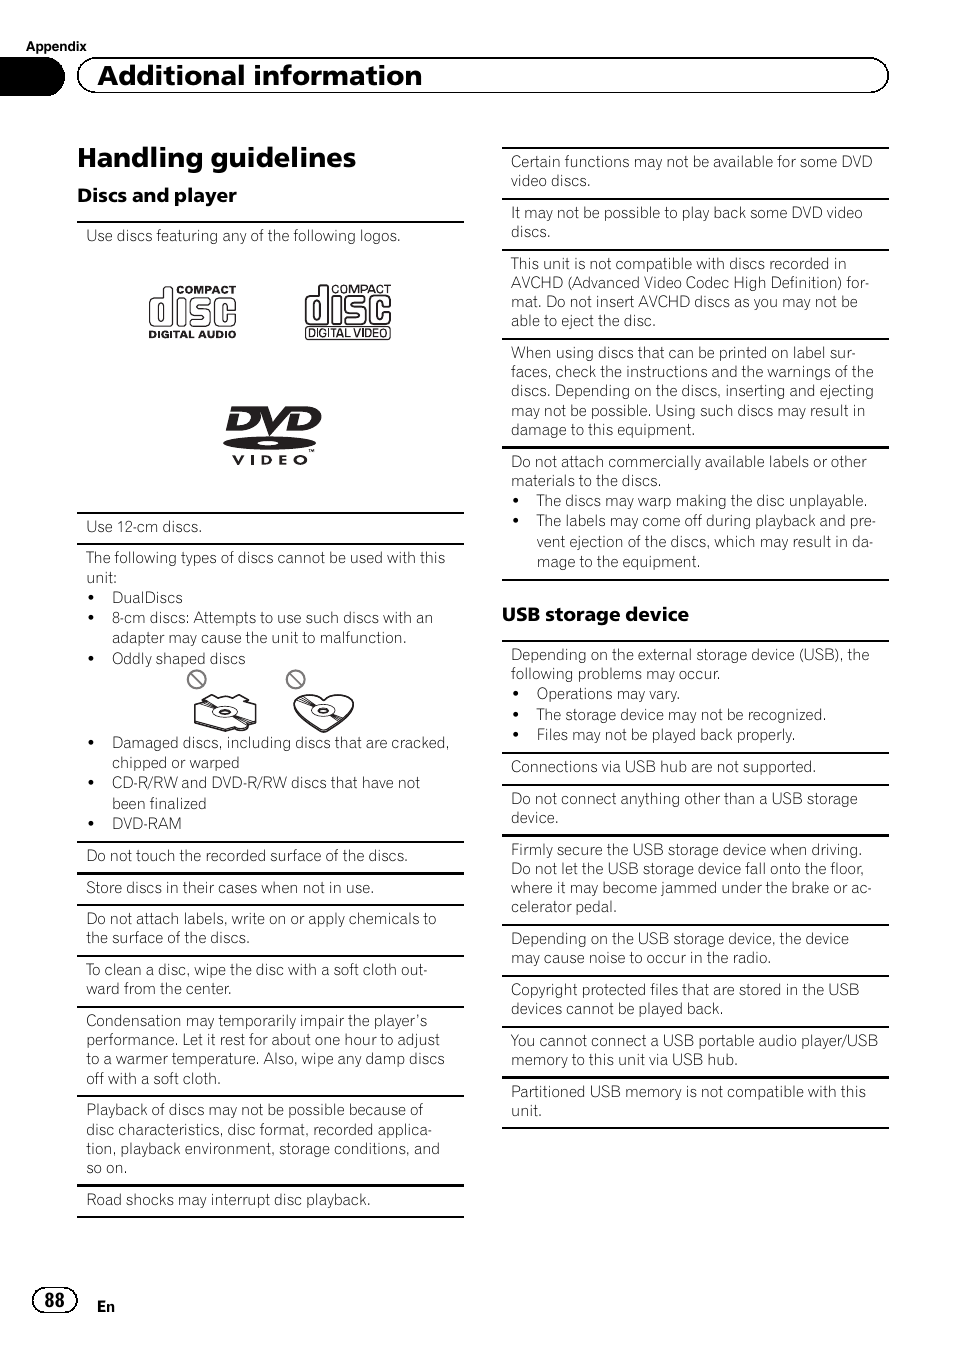 Handling guidelines, Additional information   Pioneer AVH-X2600BT User  Manual   Page 88 /